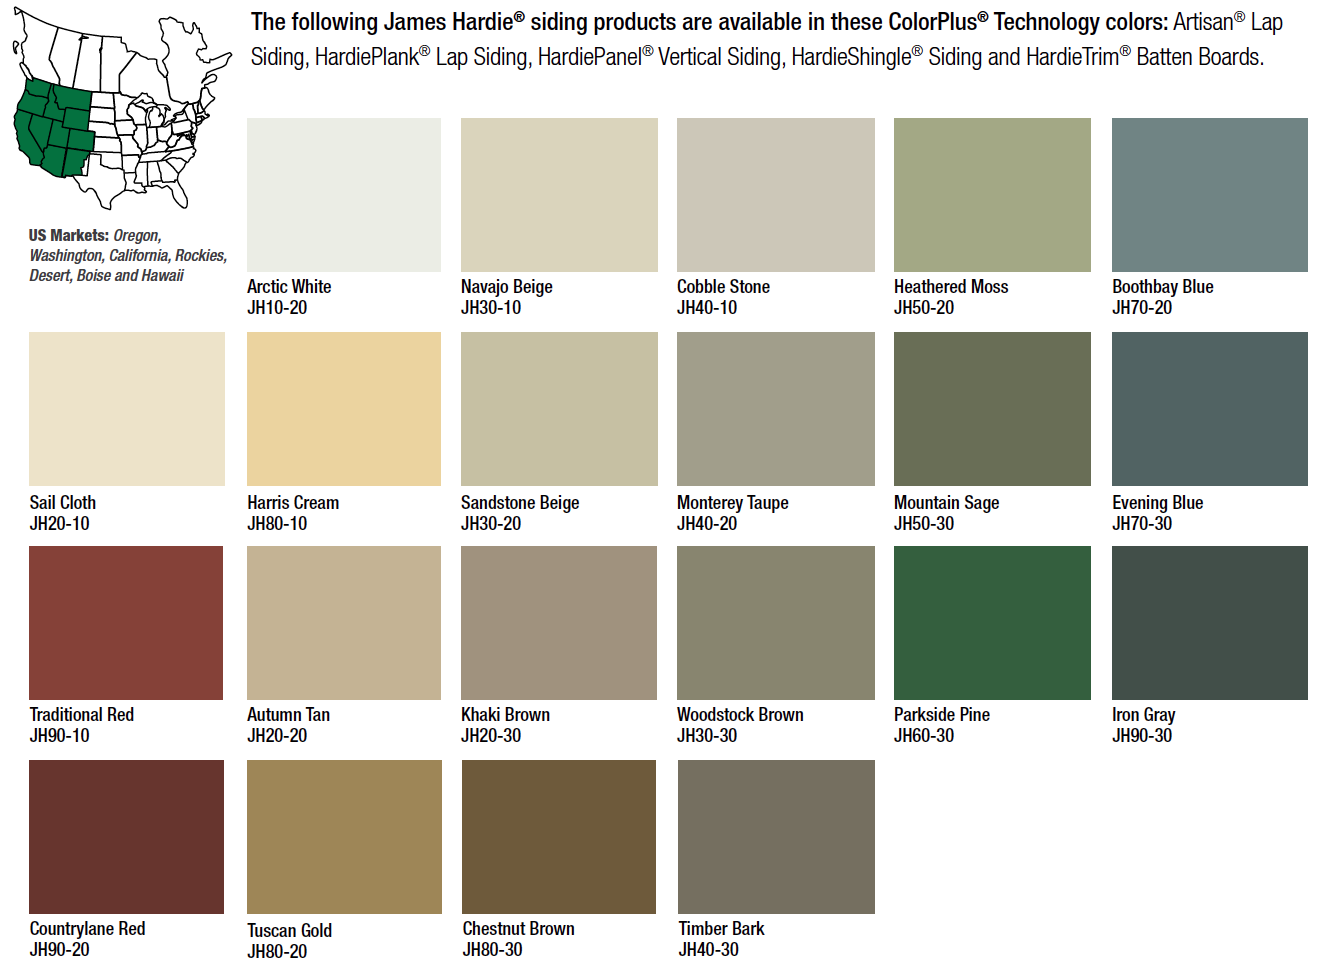 Cement Board Siding Colors : James hardie fiber cement siding western colors wall